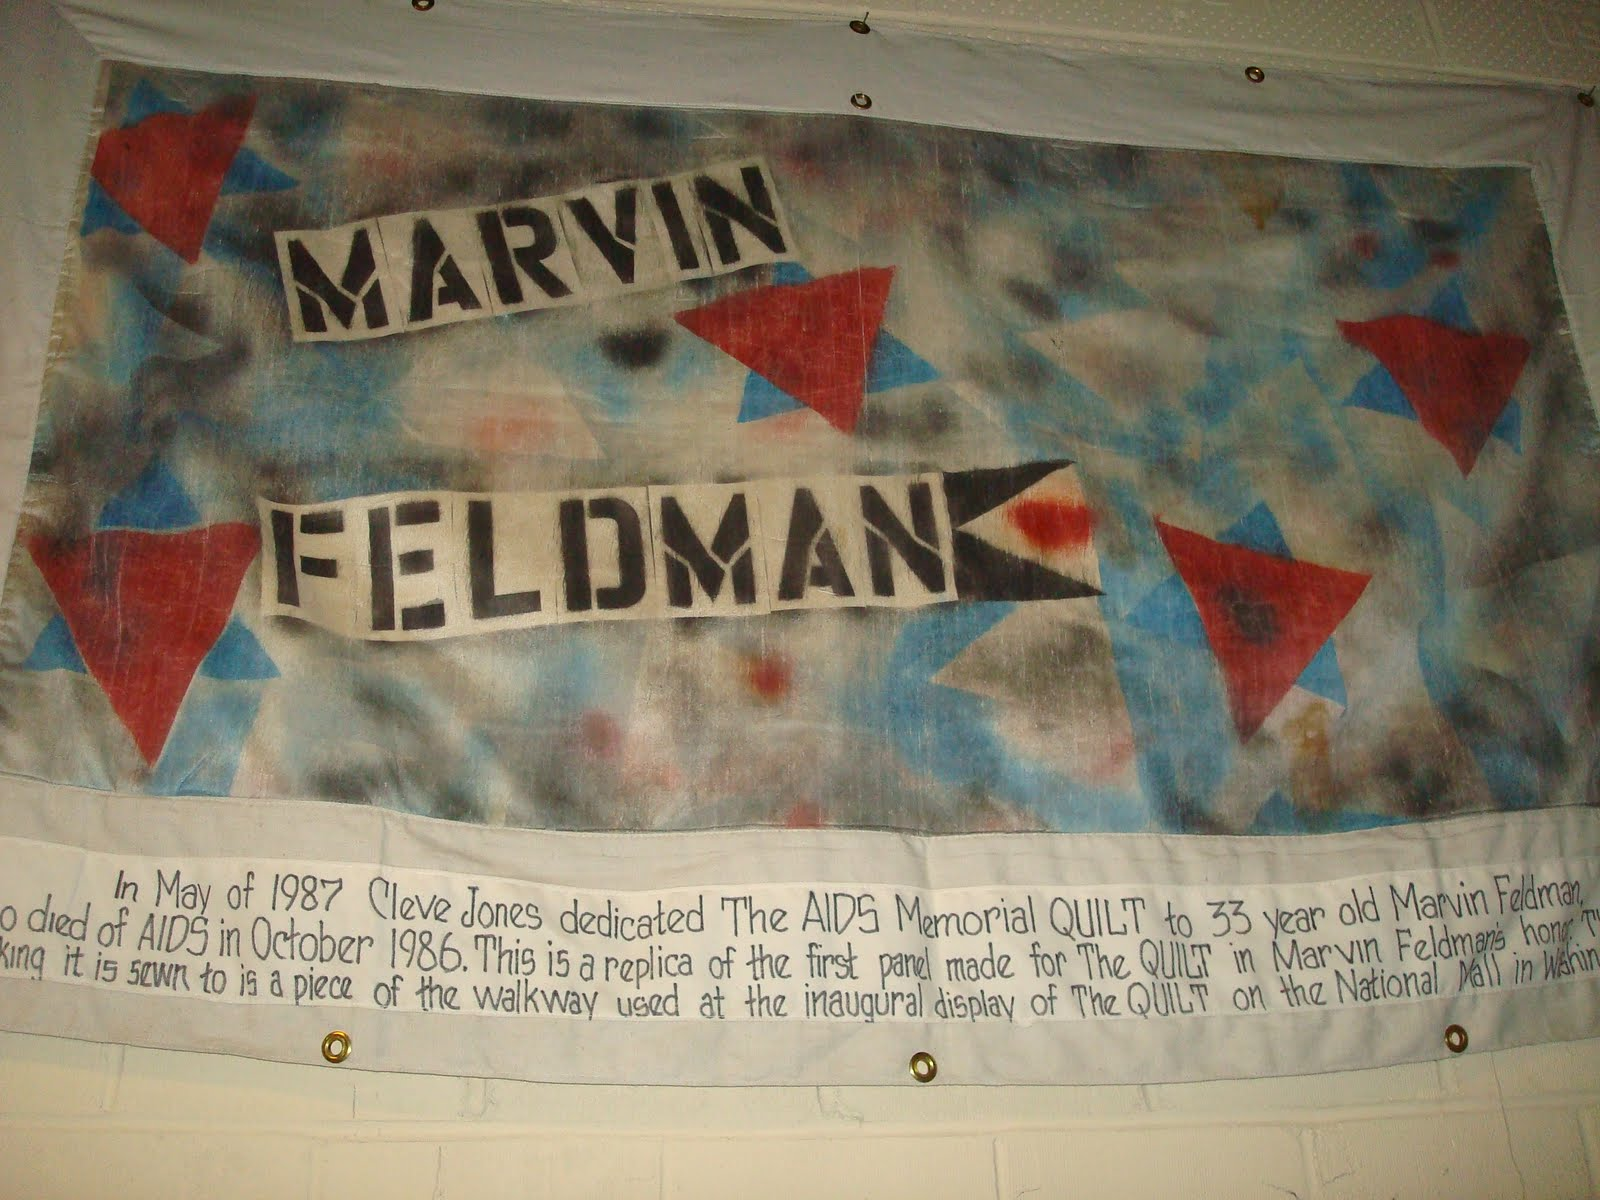 Reflections from our Jewish Civil Rights Journey: Names Project ... : names project quilt panels - Adamdwight.com